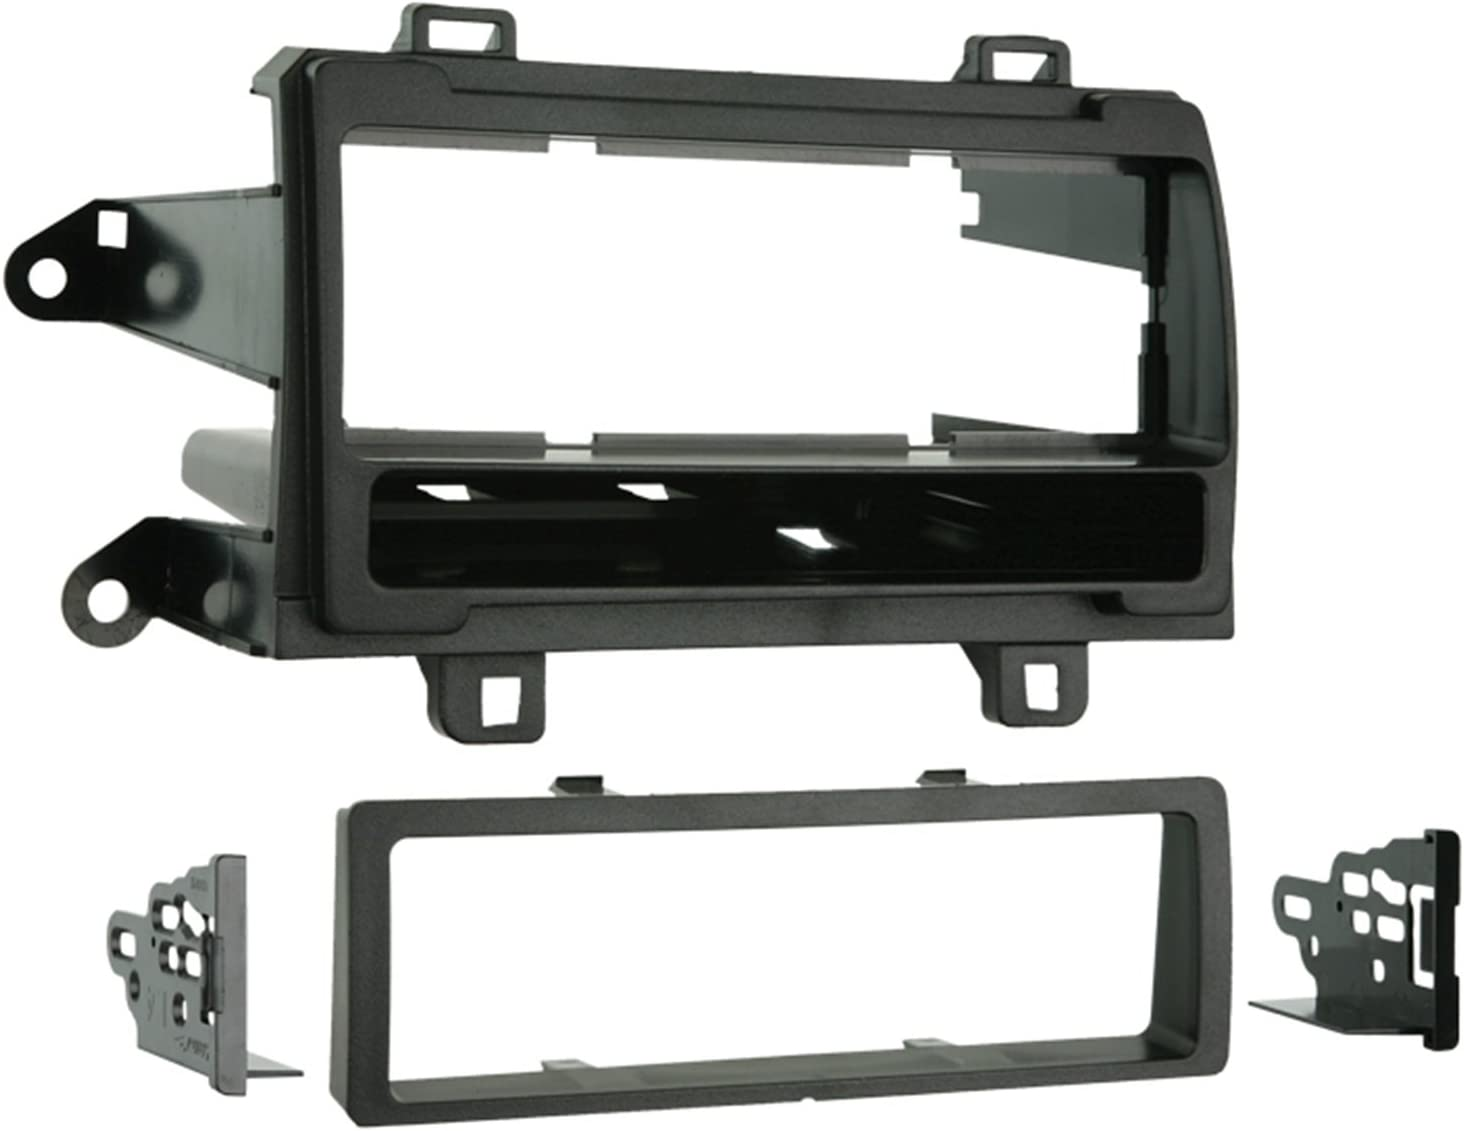 Metra 99-8224 Single DIN Installation Dash Kit for 2009 Toyota Matrix and Pontiac Vibe